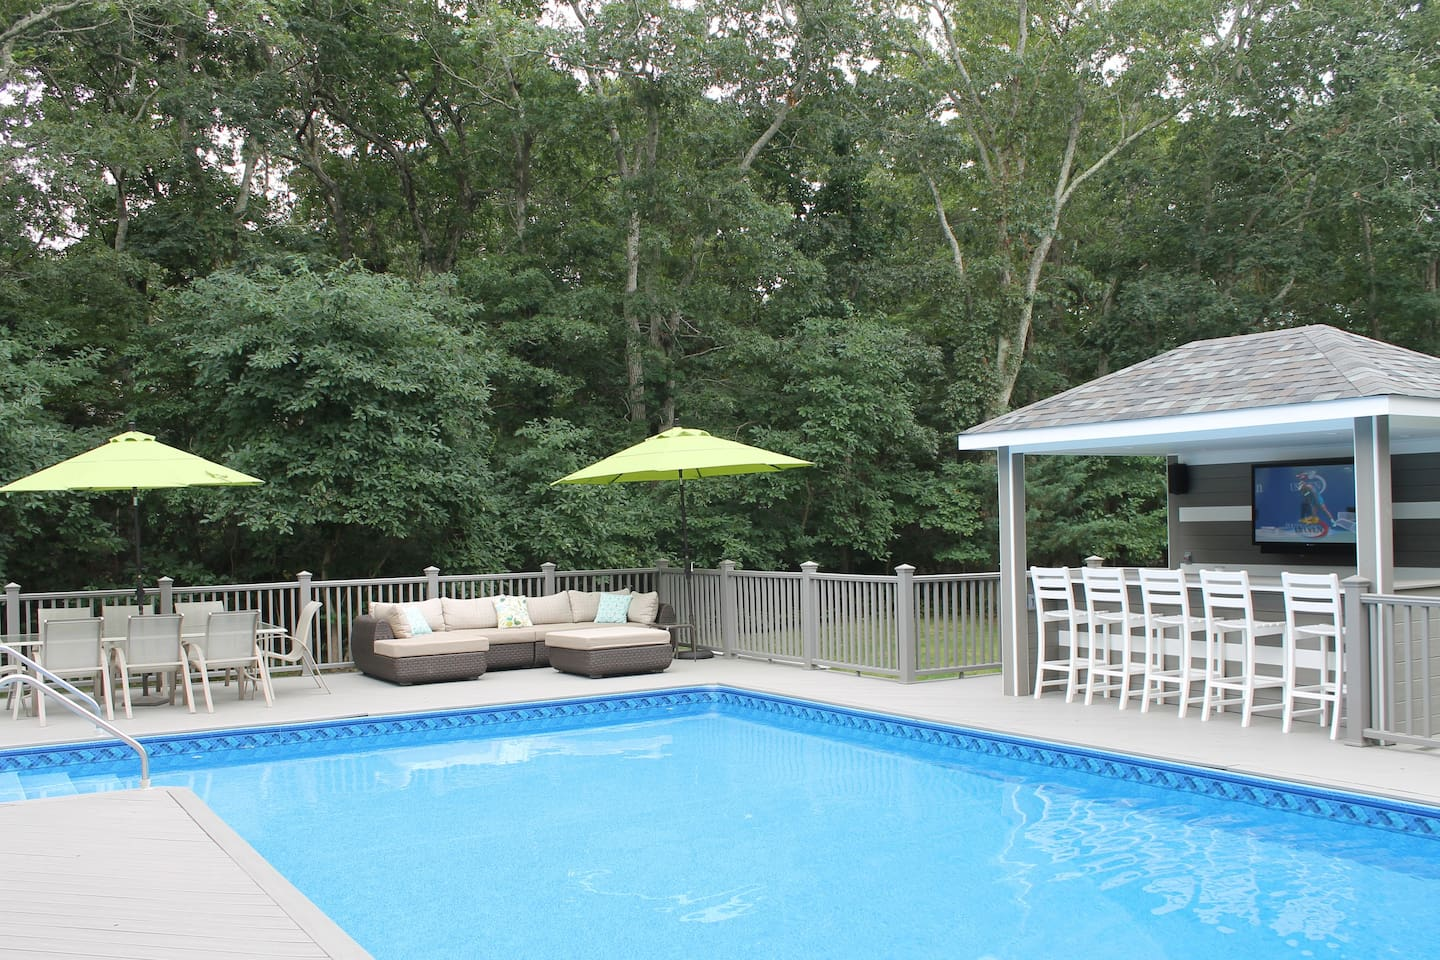 The ultra-private back deck features a heated pool, dining area, lounge area and brand-new outdoor entertainment center with a bar a TV.